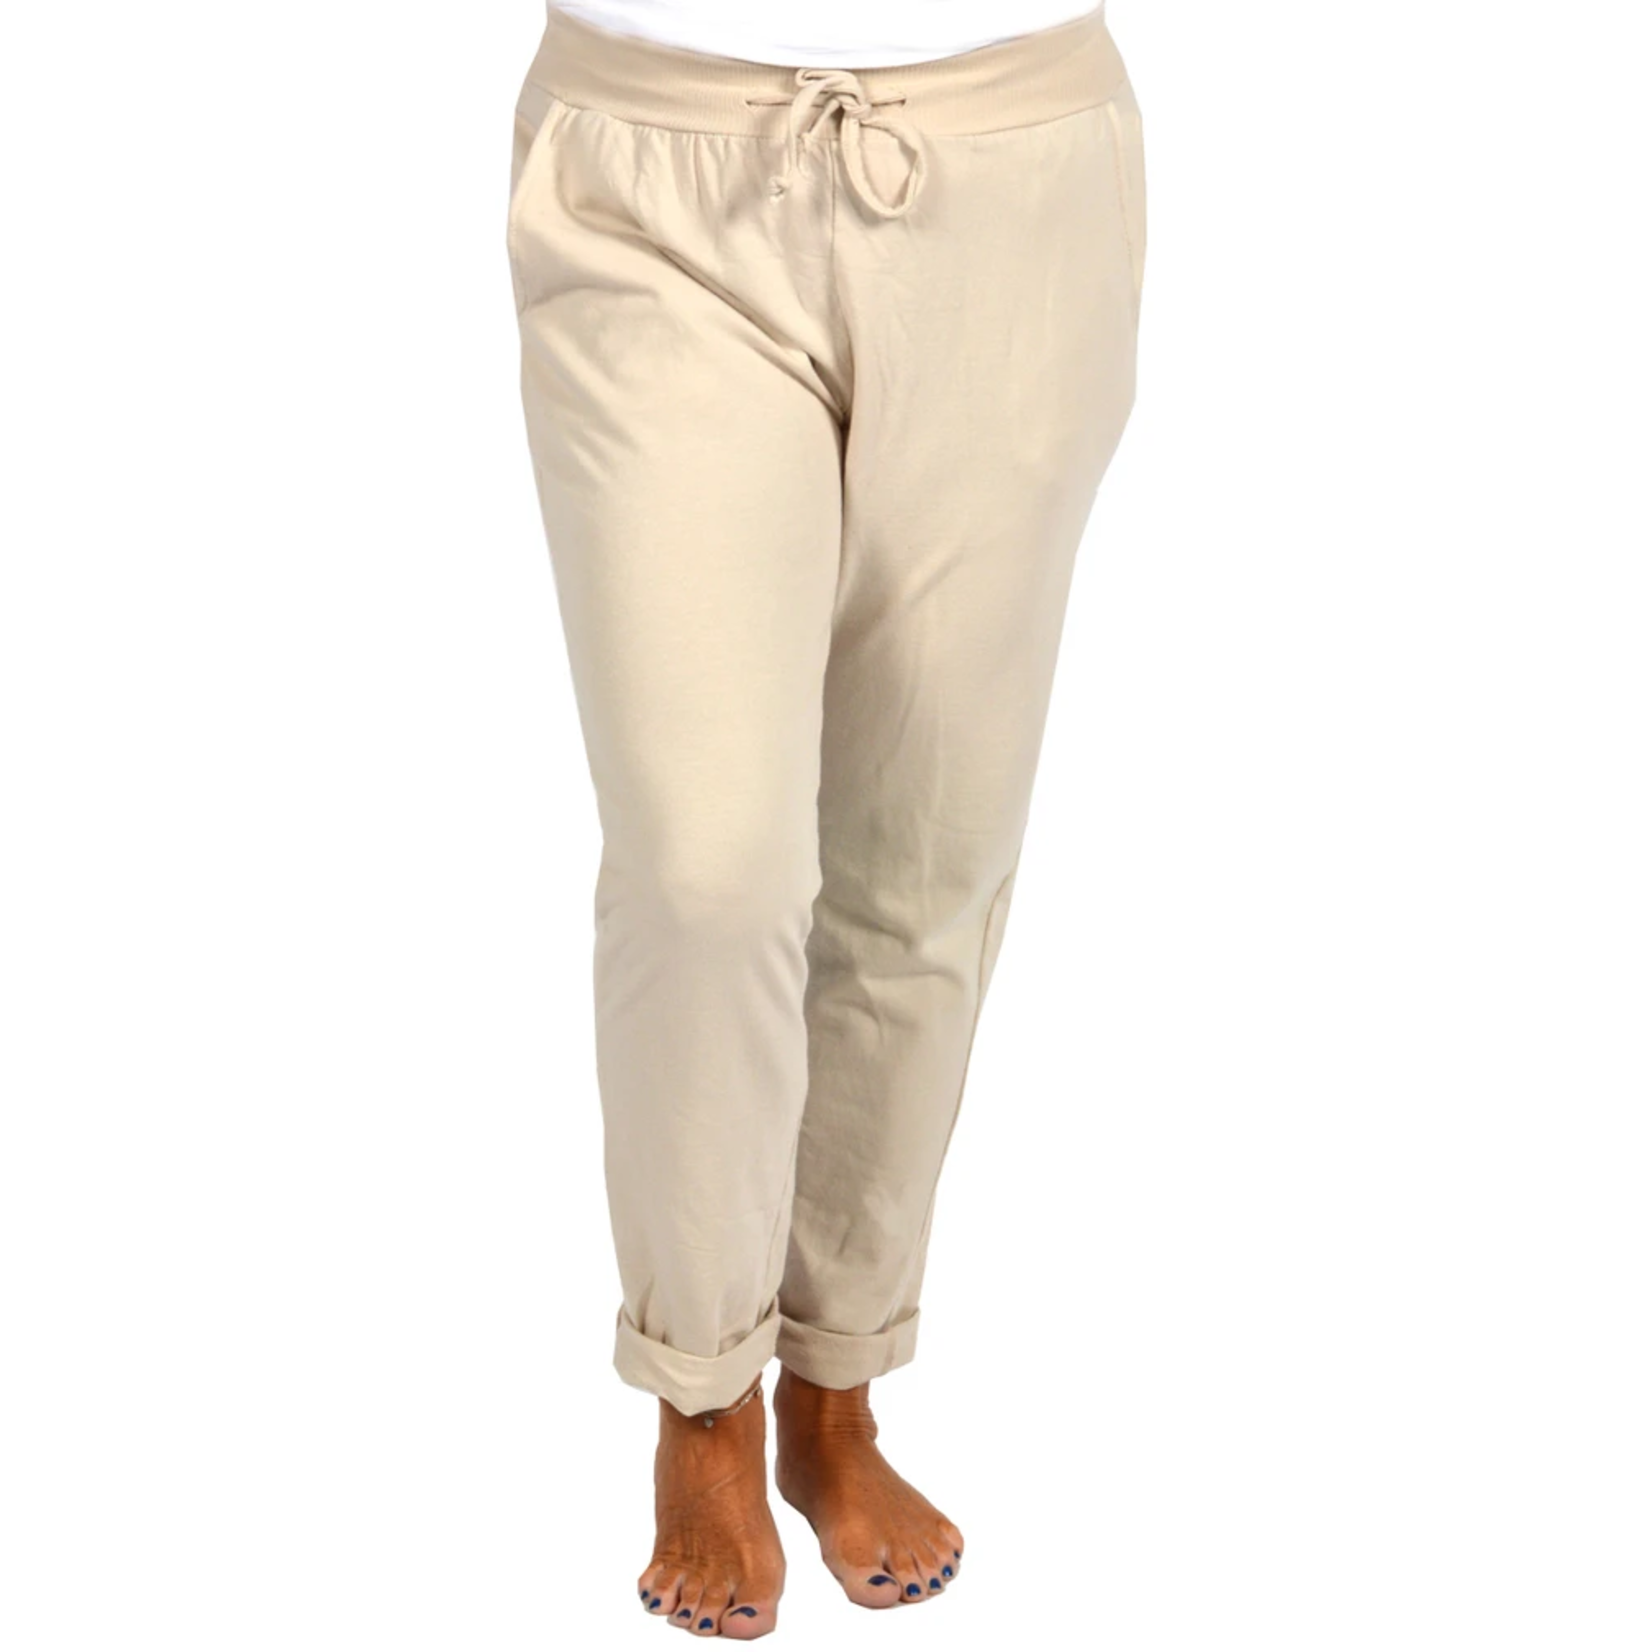 Catherine Lily White Beige Rolled Cuff Pant